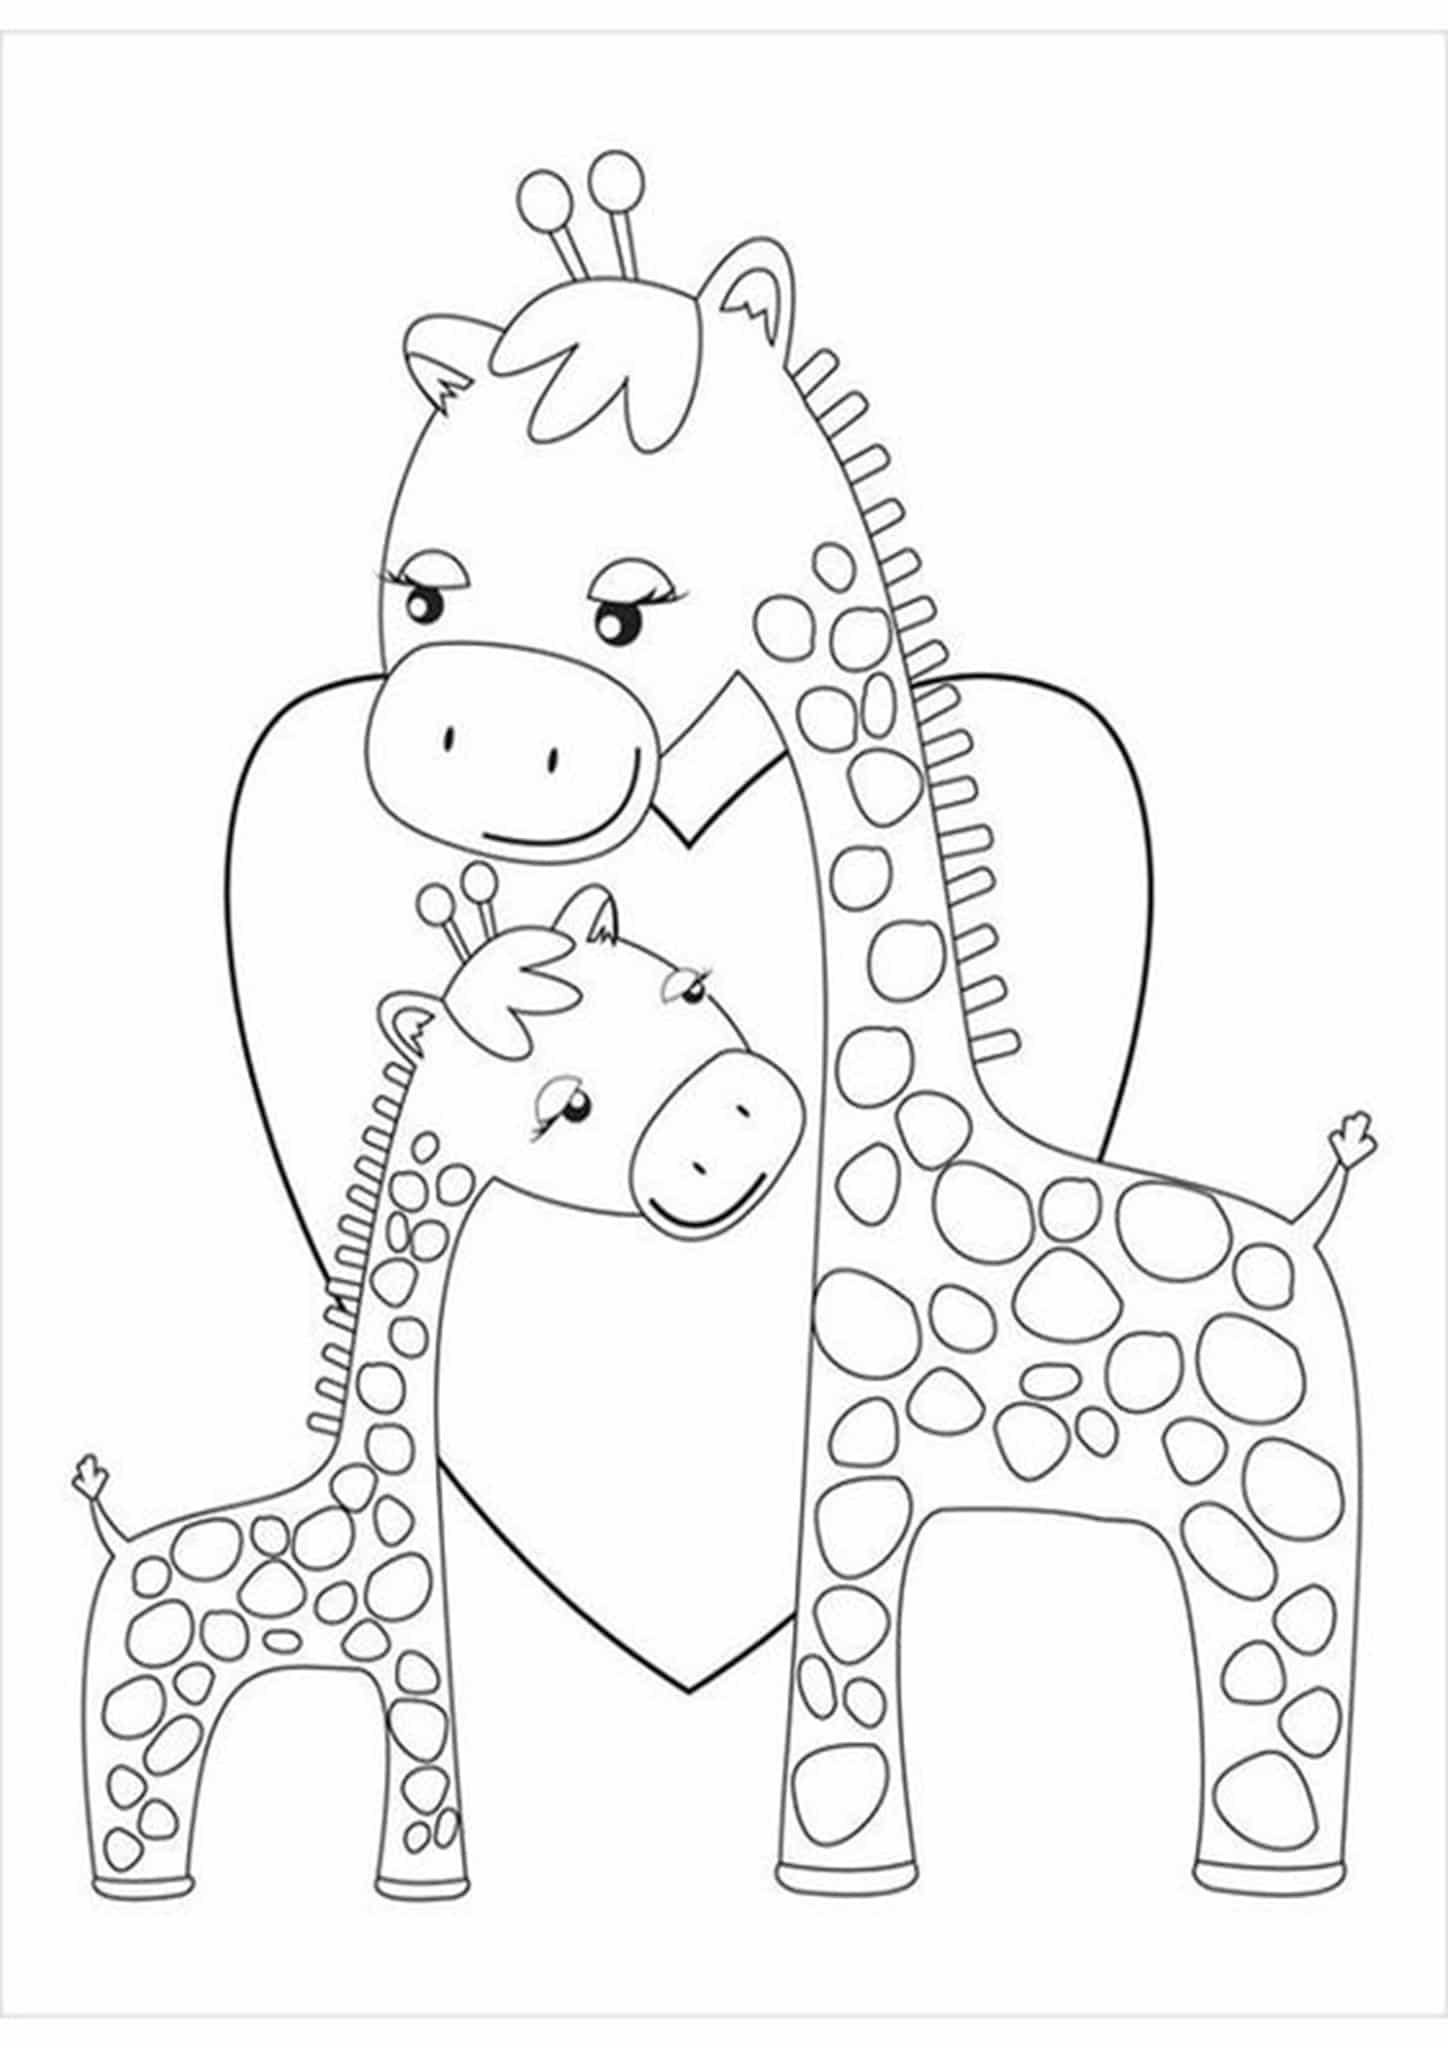 Free & Easy To Print Giraffe Coloring Pages - Tulamama